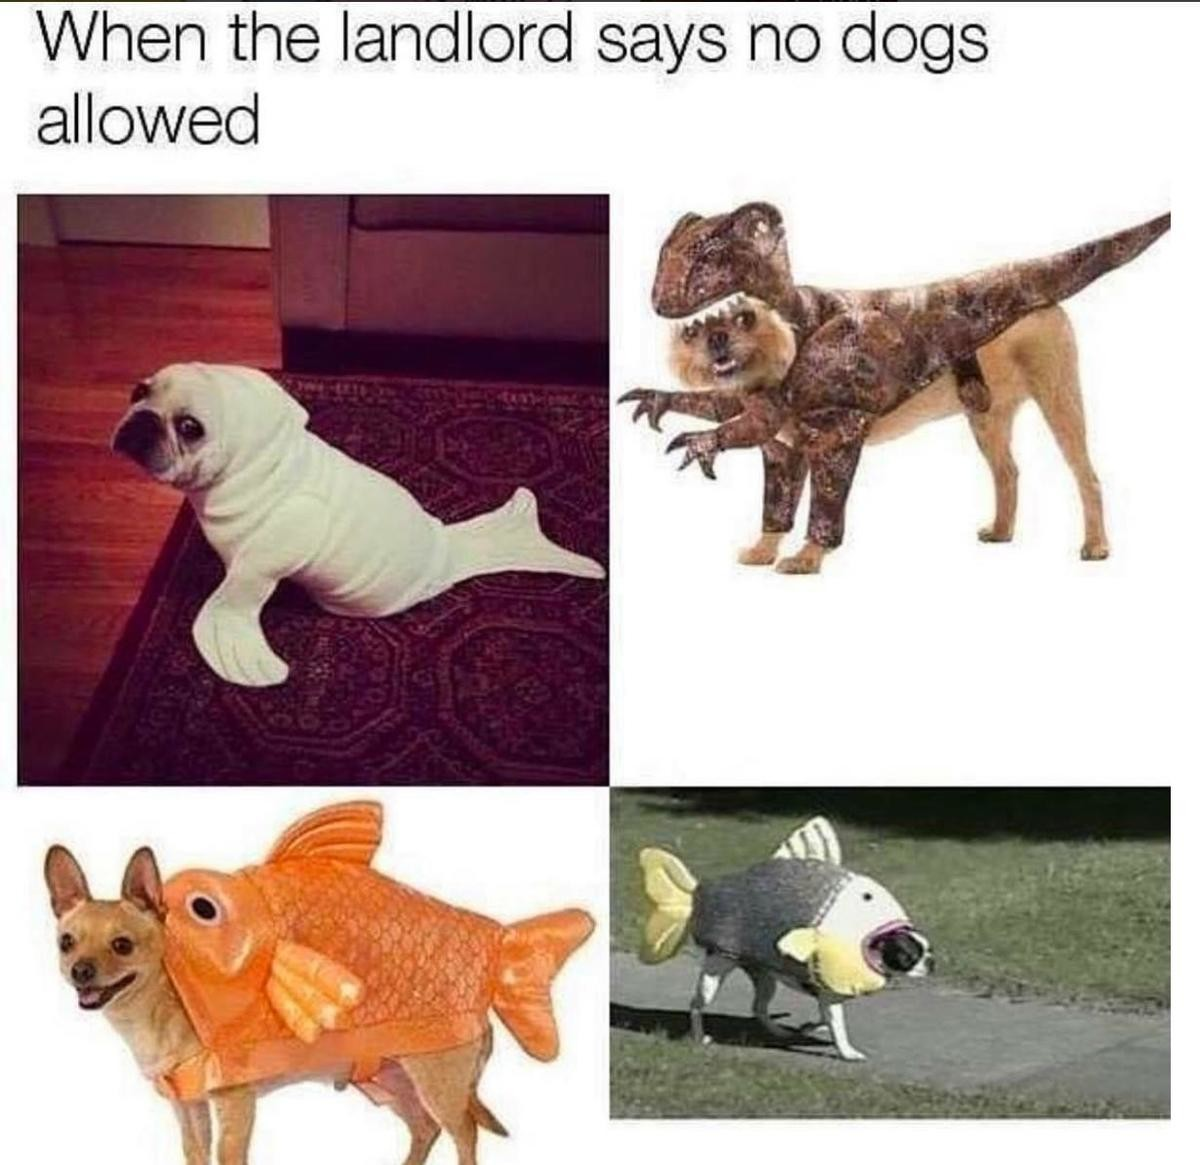 No dogs. . When , l! landlord no '. I once almost had the perfect apartment 3 bedroom, 2 bath, huge closet decent rent there was a playground community yard with picnic gazebo. suddenly landlord s